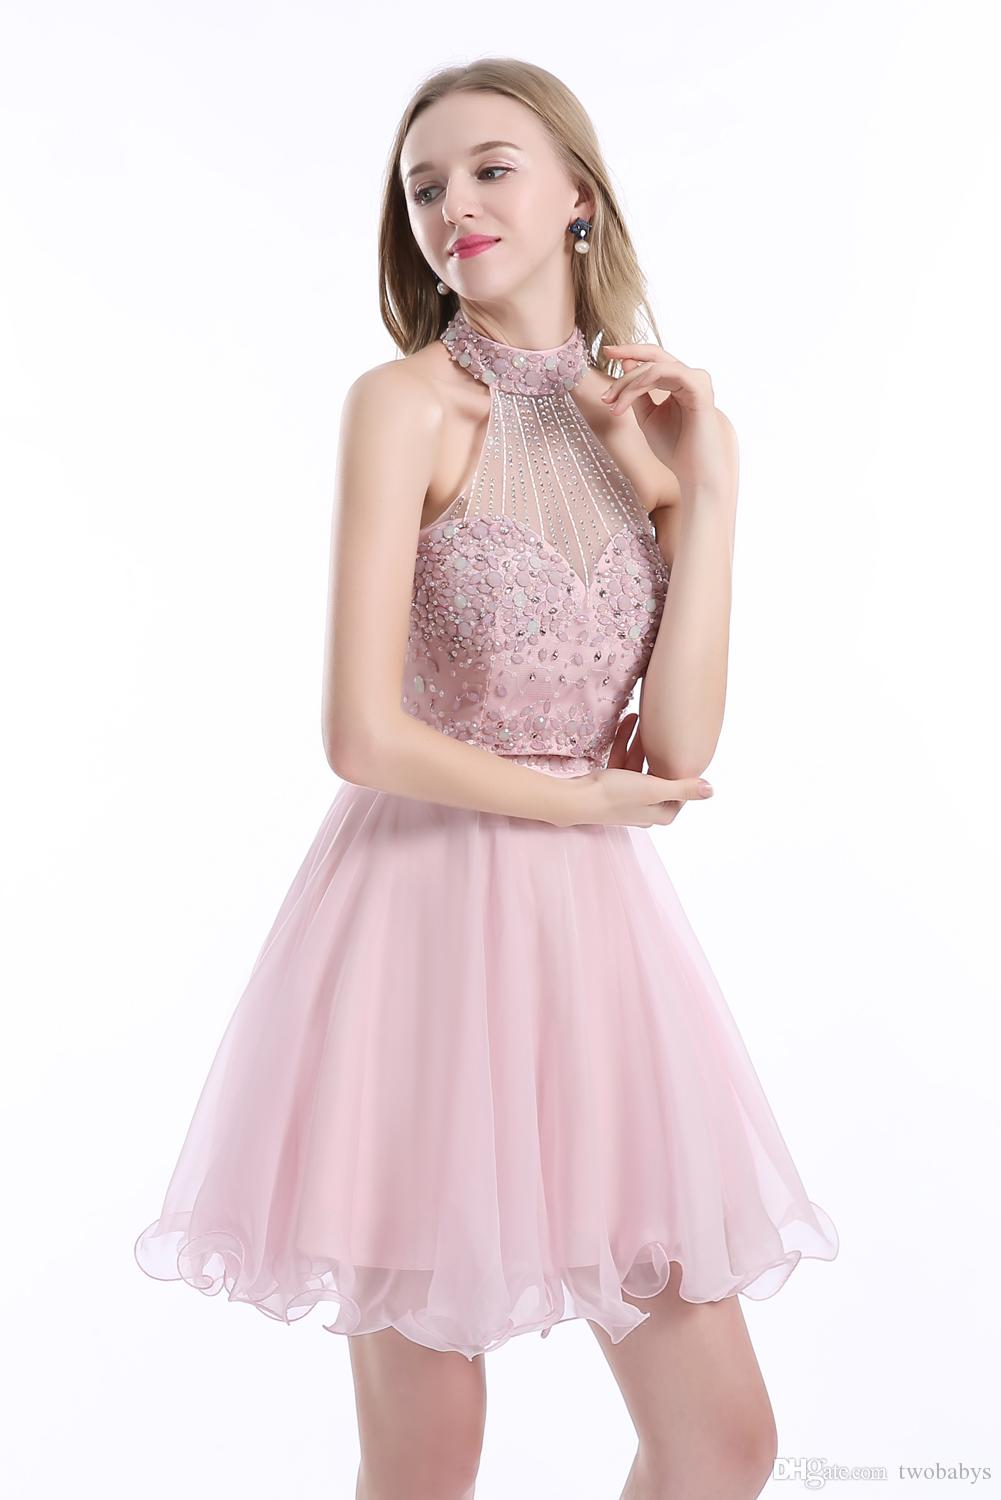 Girl Homecoming Dresses Sexy Mini Two Piece Prom Dress Elegant Luxury Short Cocktail Dresses 2017 robe de cocktail